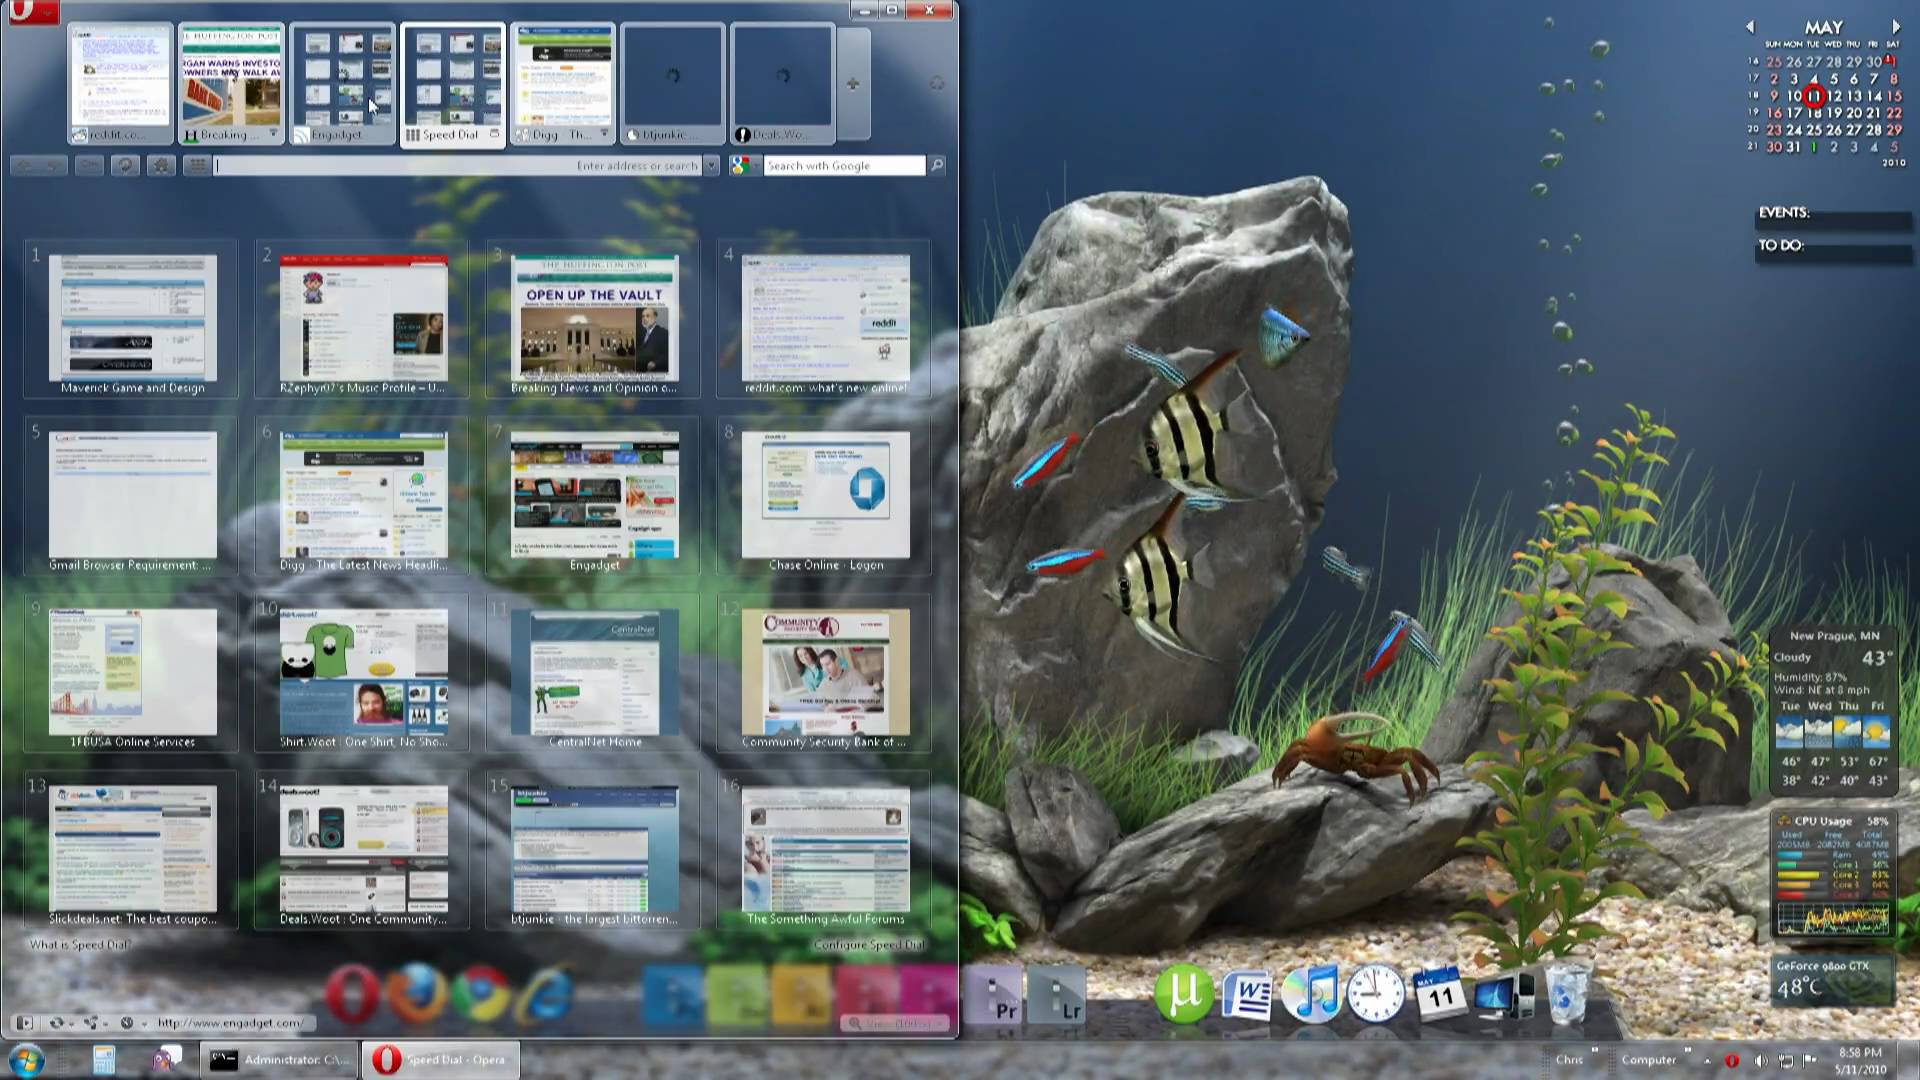 Wallpaper Software For Pc